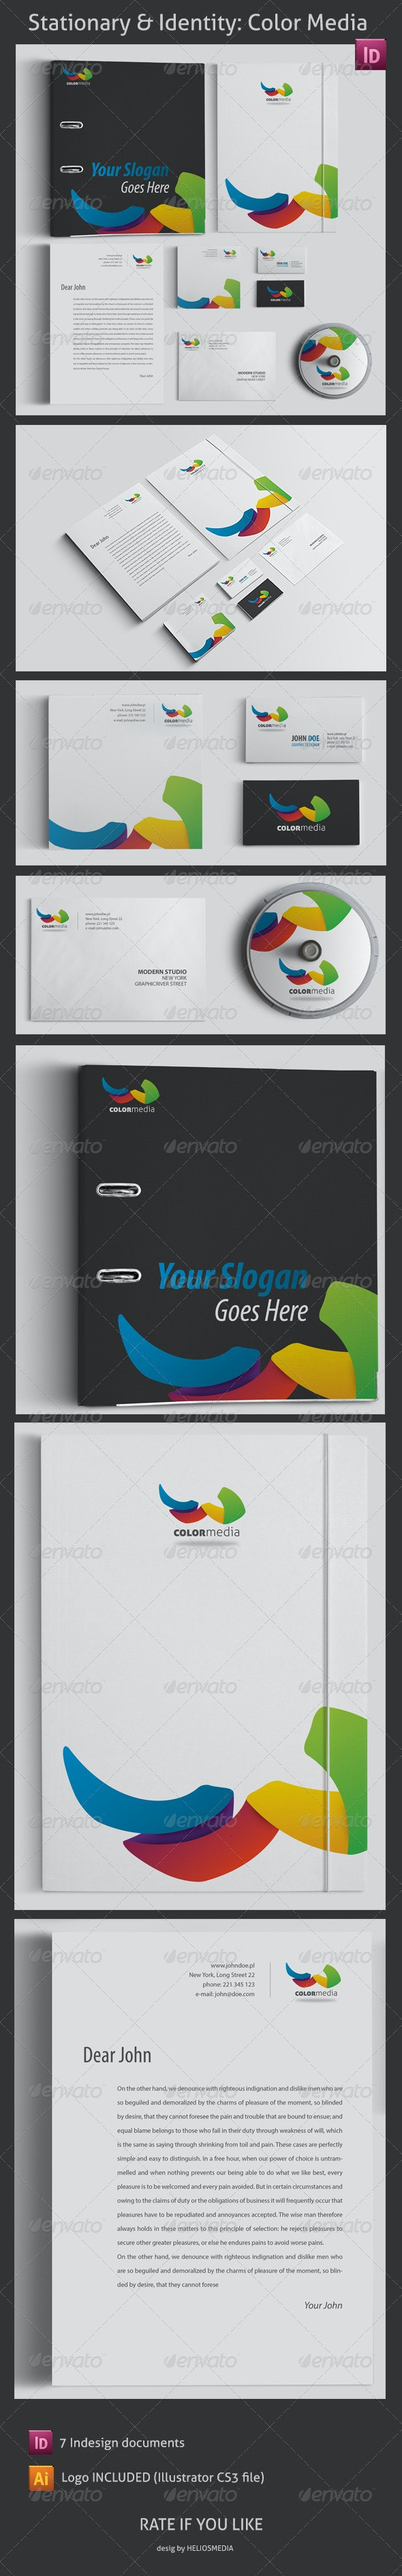 Stationery & Identity: Color Media - Stationery Print Templates